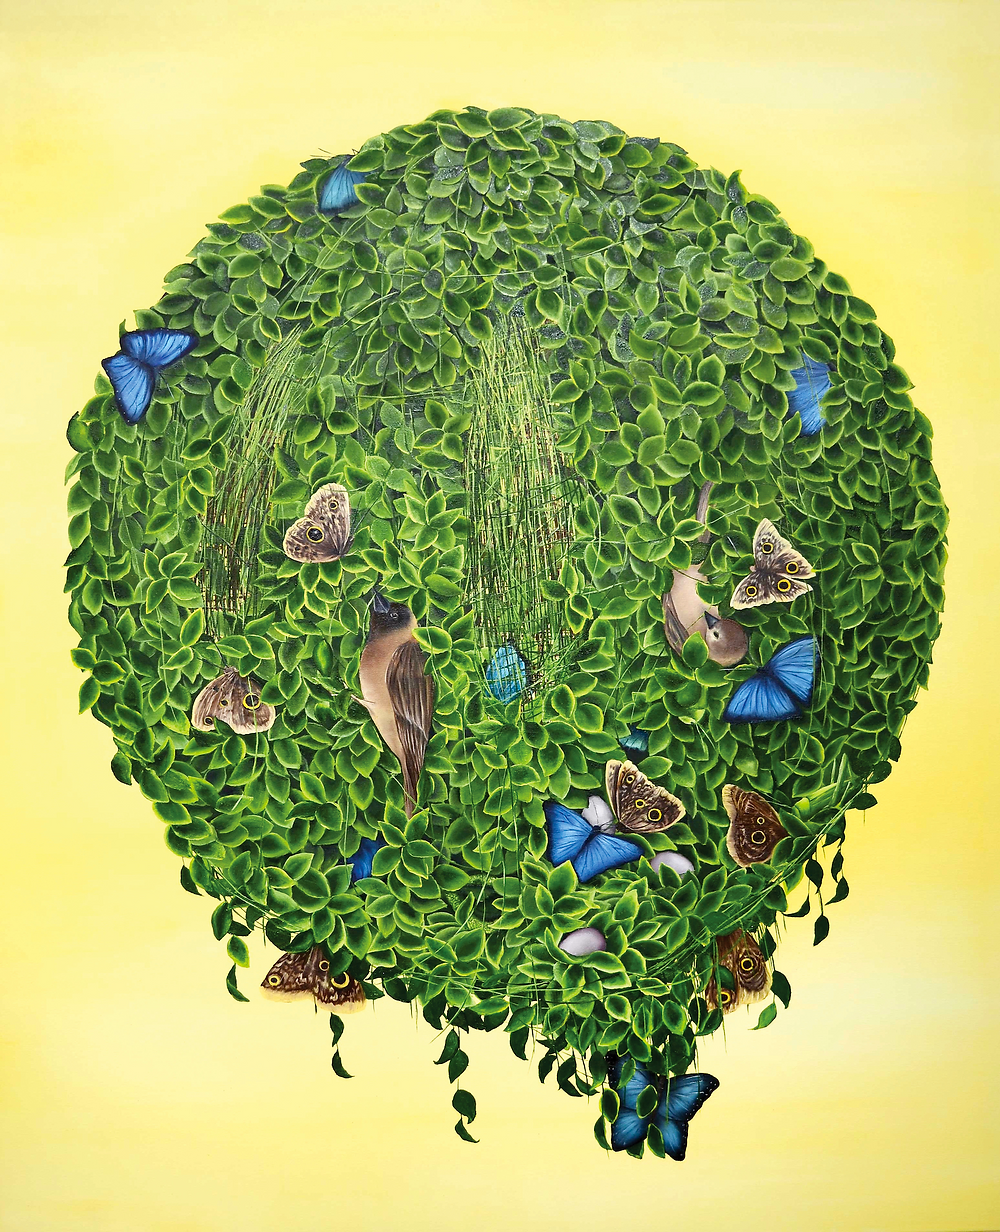 Sphere of greenery in the center surrounded by yellow background. Painting by Allison Green.